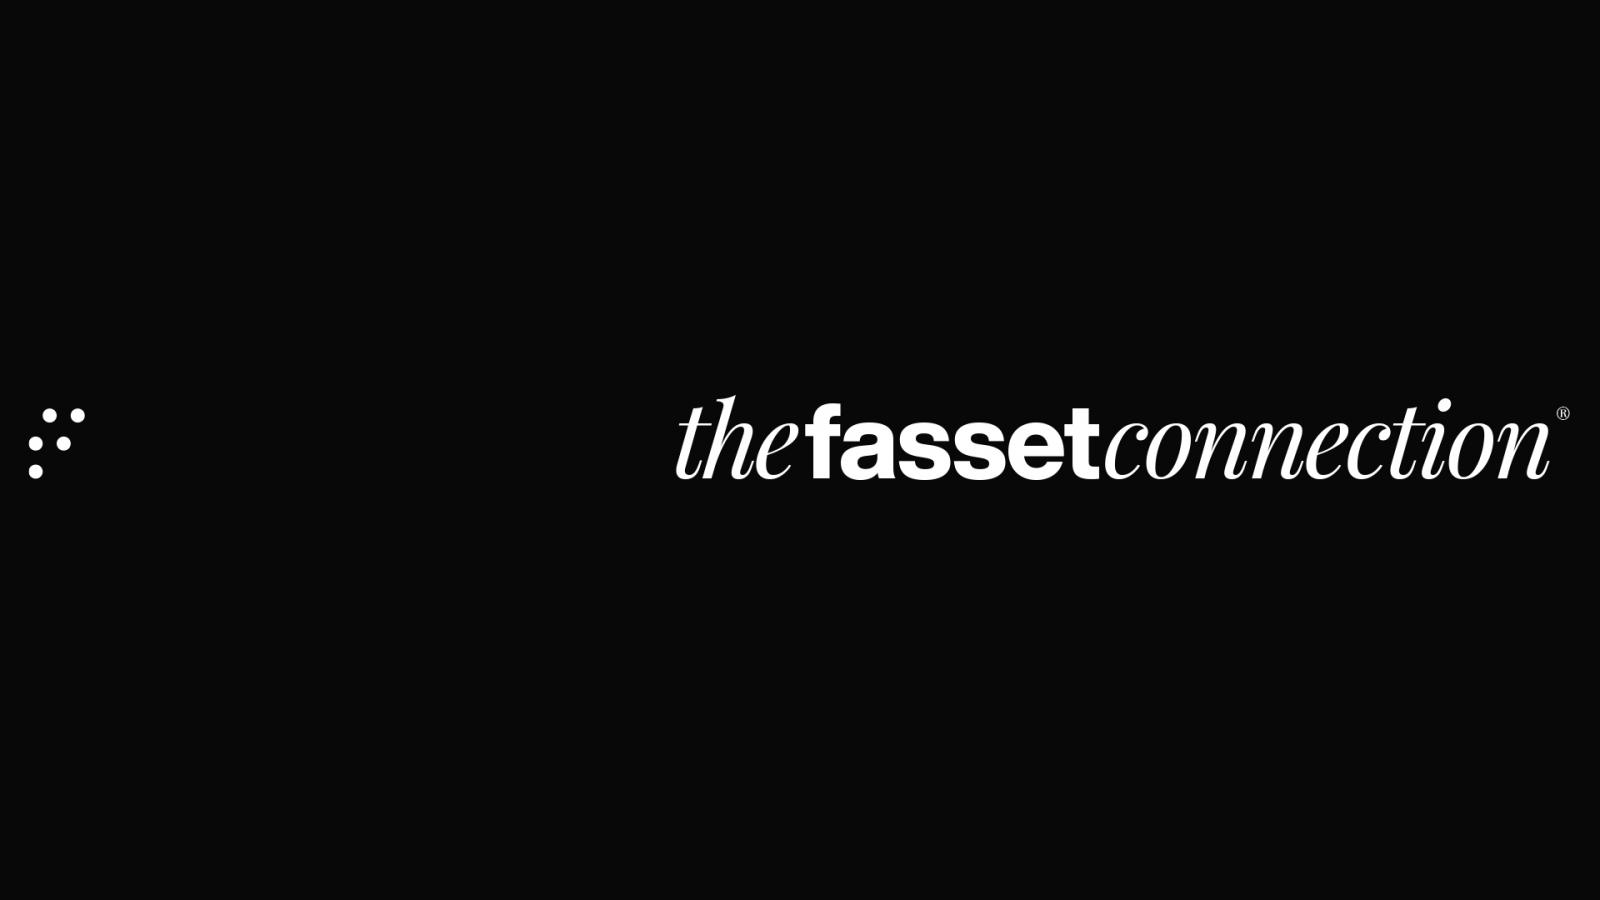 branding huisstijl logo the fasset connection